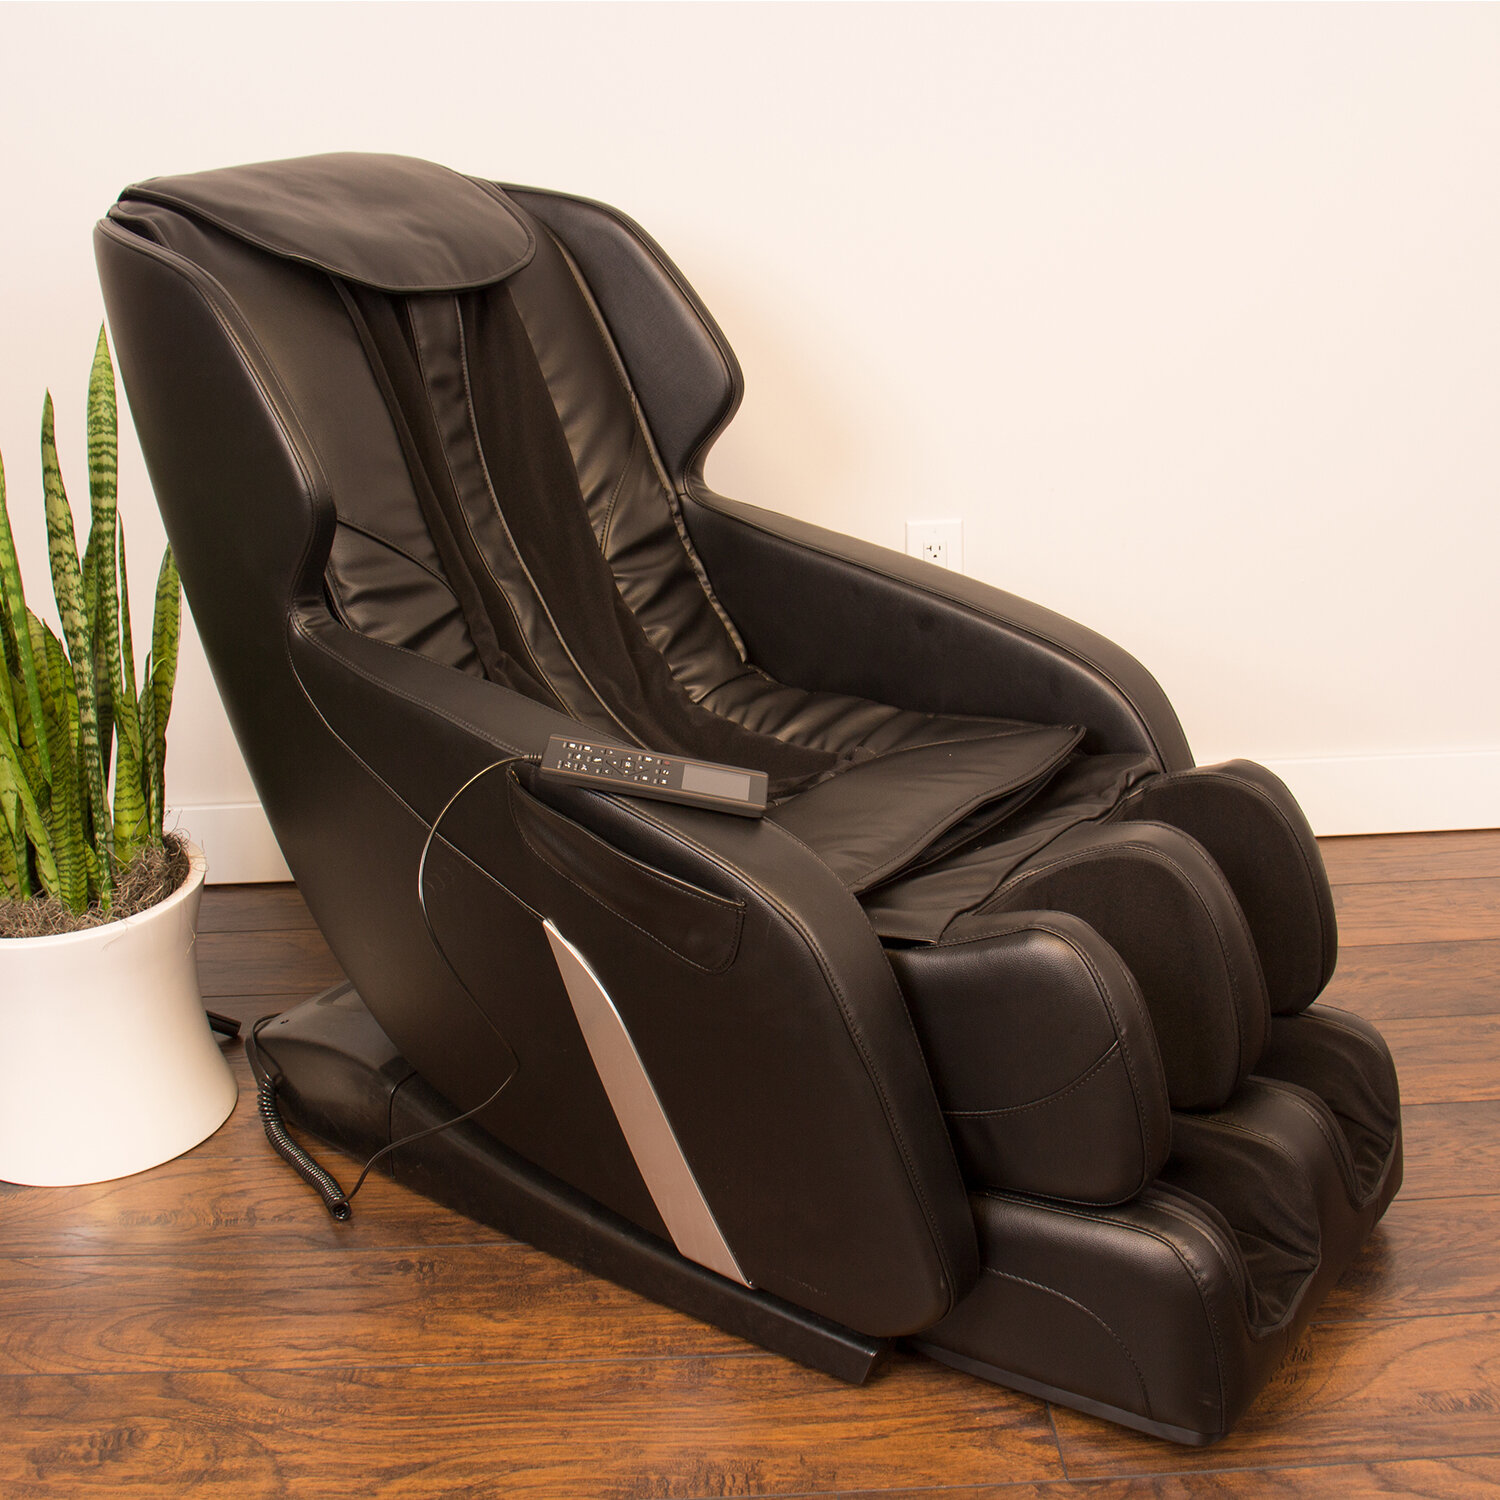 free os gravity deluxe chair osaki health overstock today beauty zero shipping product massage